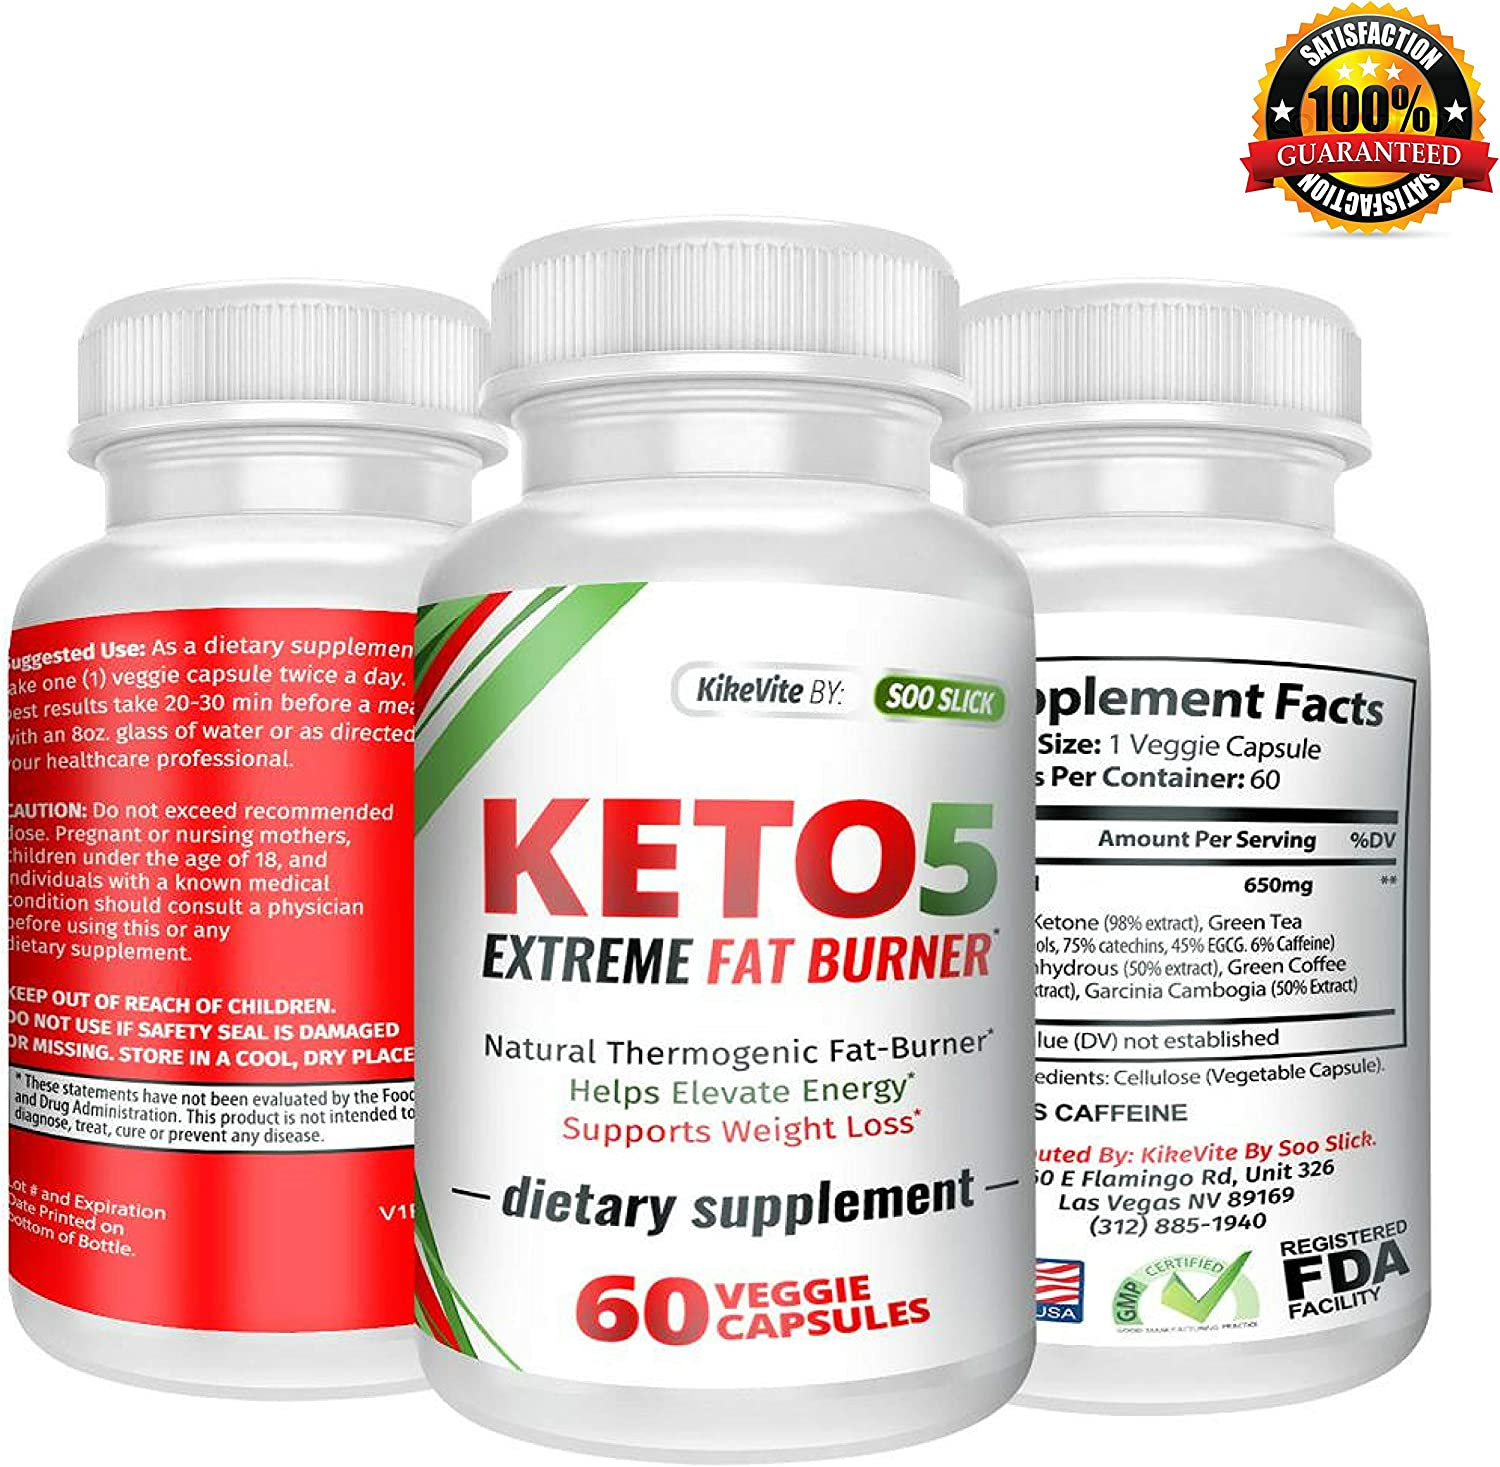 Keto-5 Extreme Fat Burner – Supports Healthy Weight Loss, Mental Focus Clarity 60 Ct. Extra Strength Ketogenic Supplement Pills